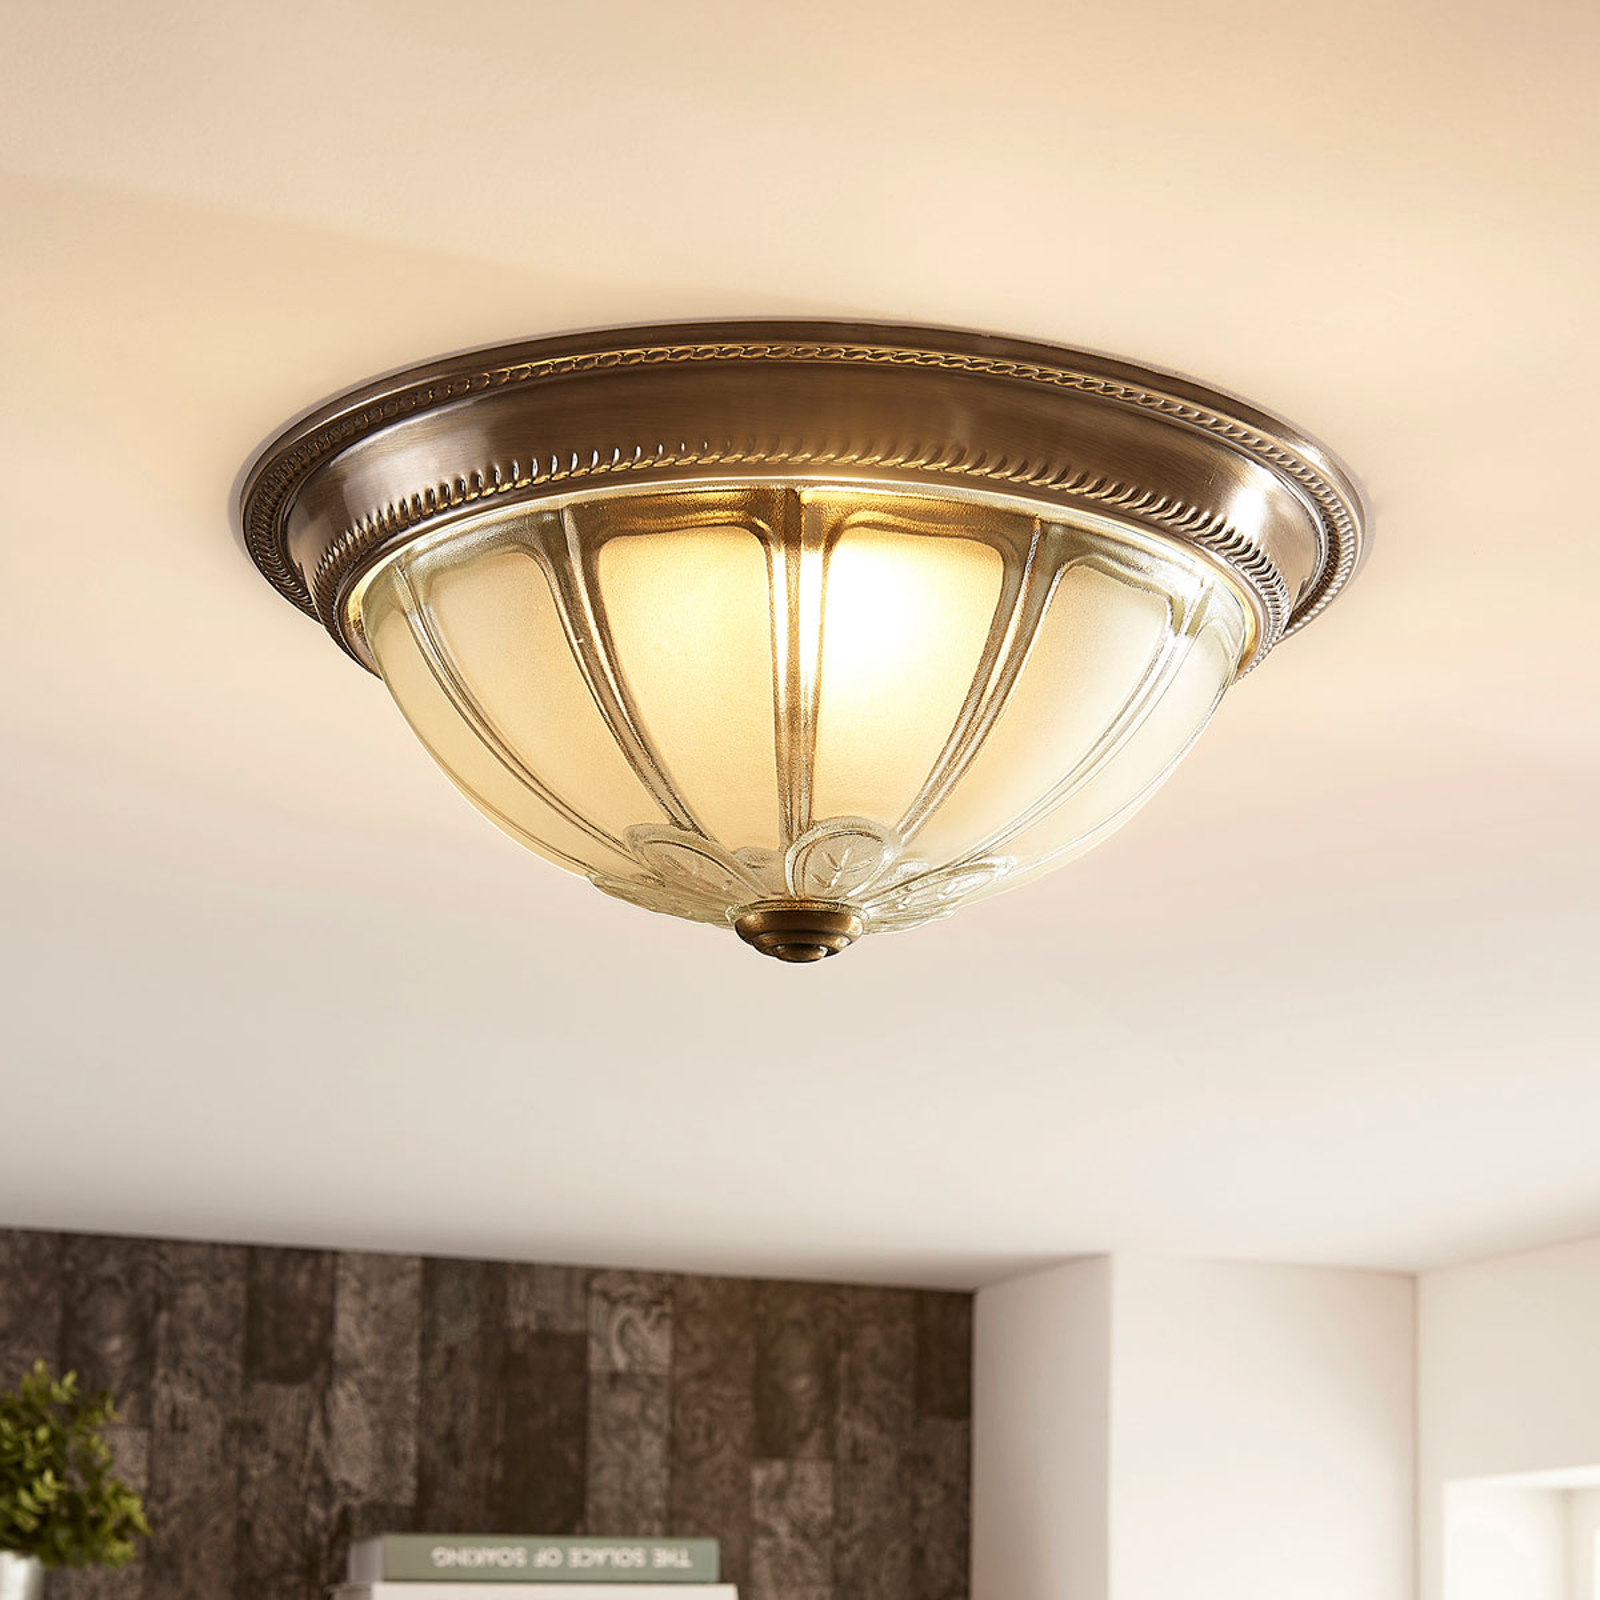 Plafonnier LED Henja rond, dimmable 3 positions